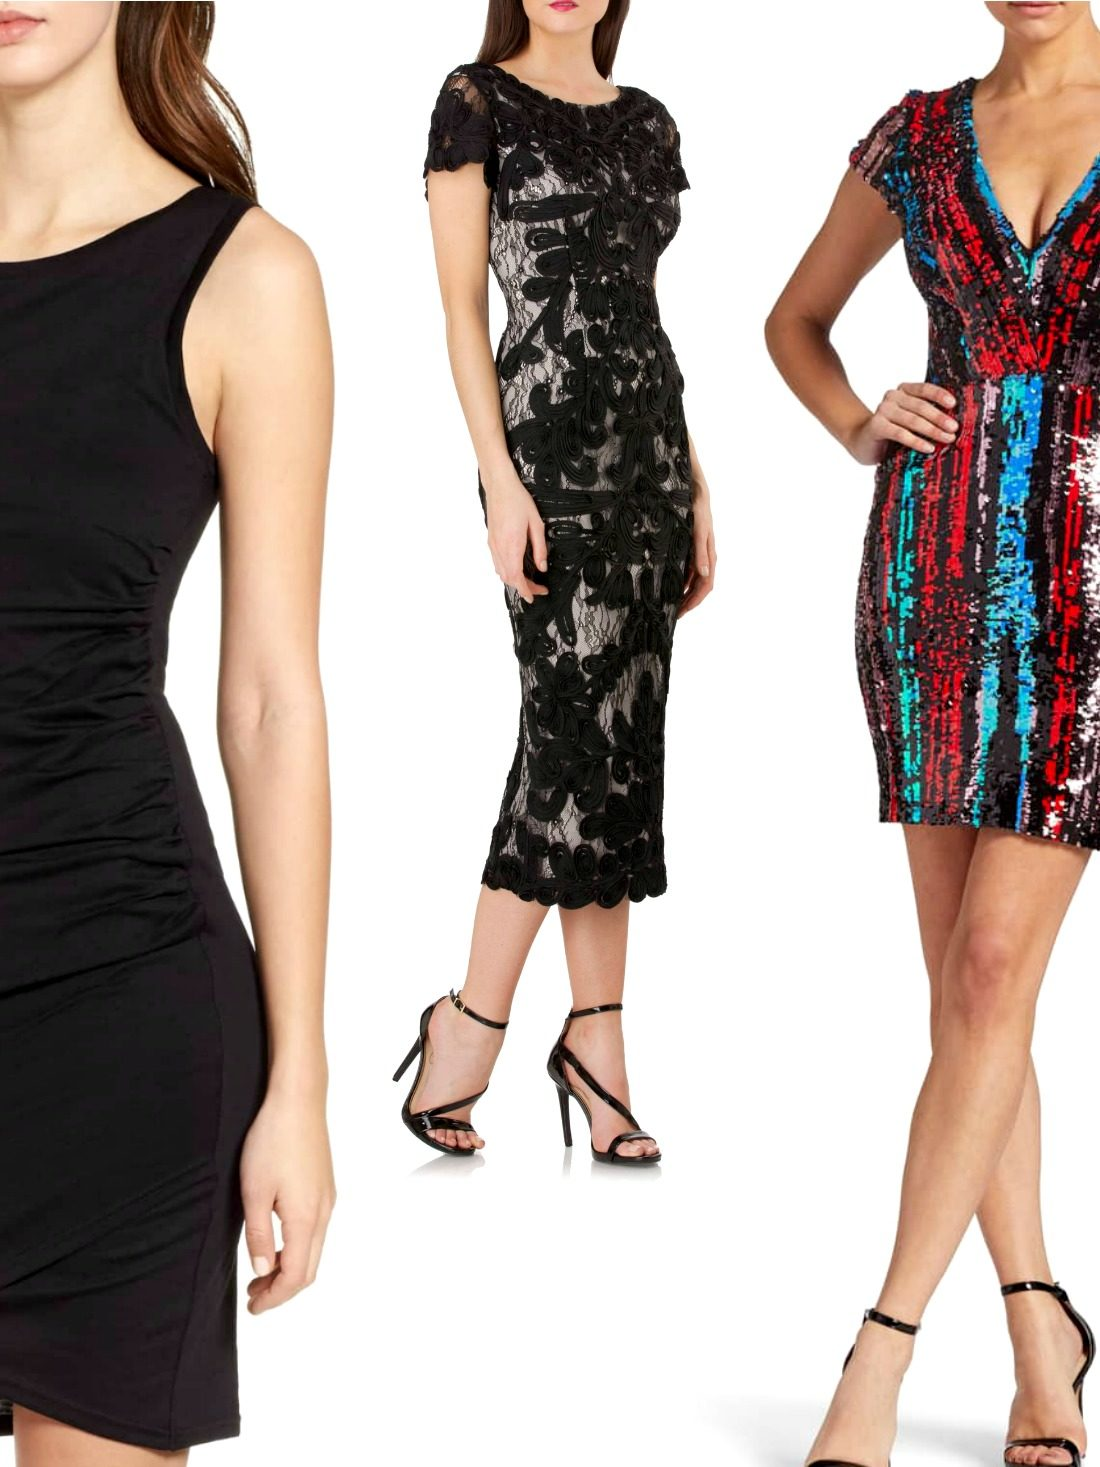 Never miss a party with our list of the best party dresses for women. They're strong and sexy for every occasion. From work to cocktails, we've got you covered.